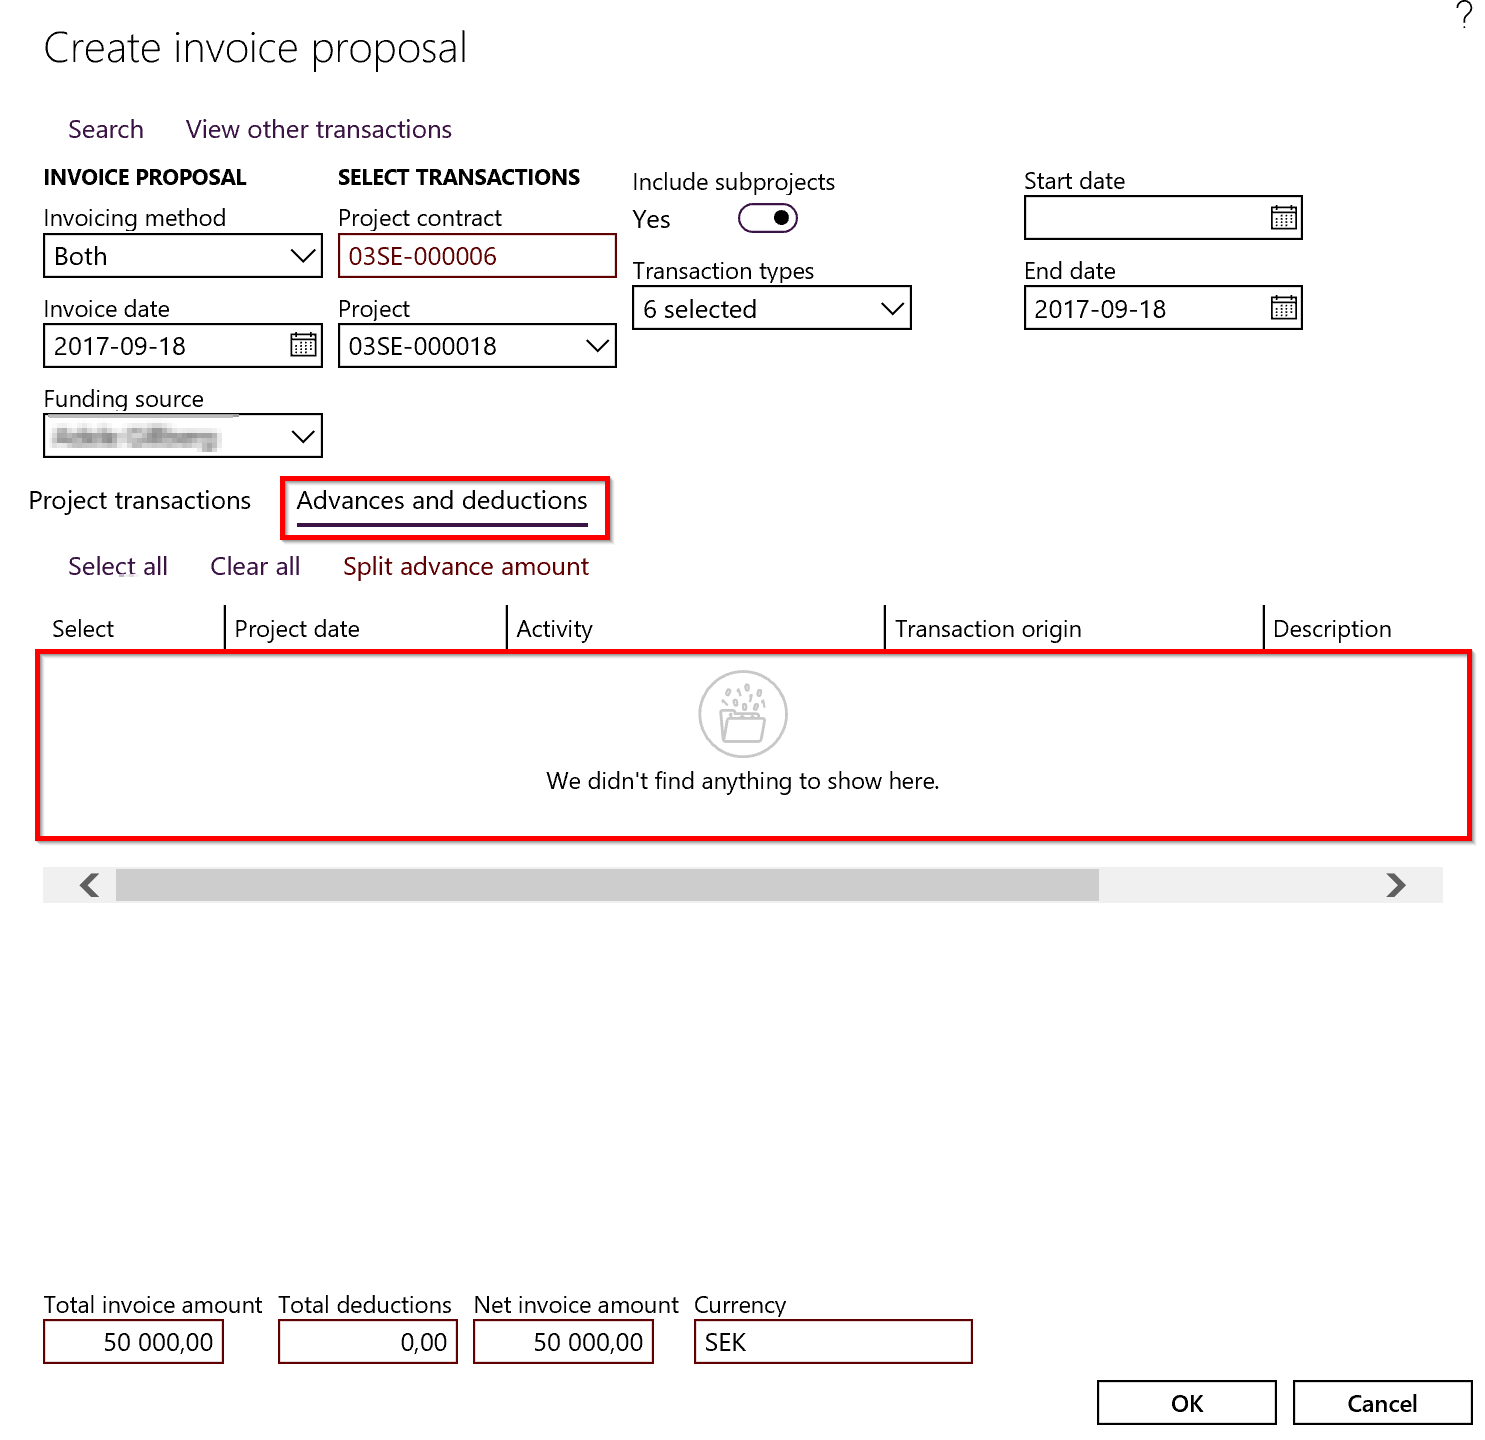 on account deduction lines don t show up in invoice proposal